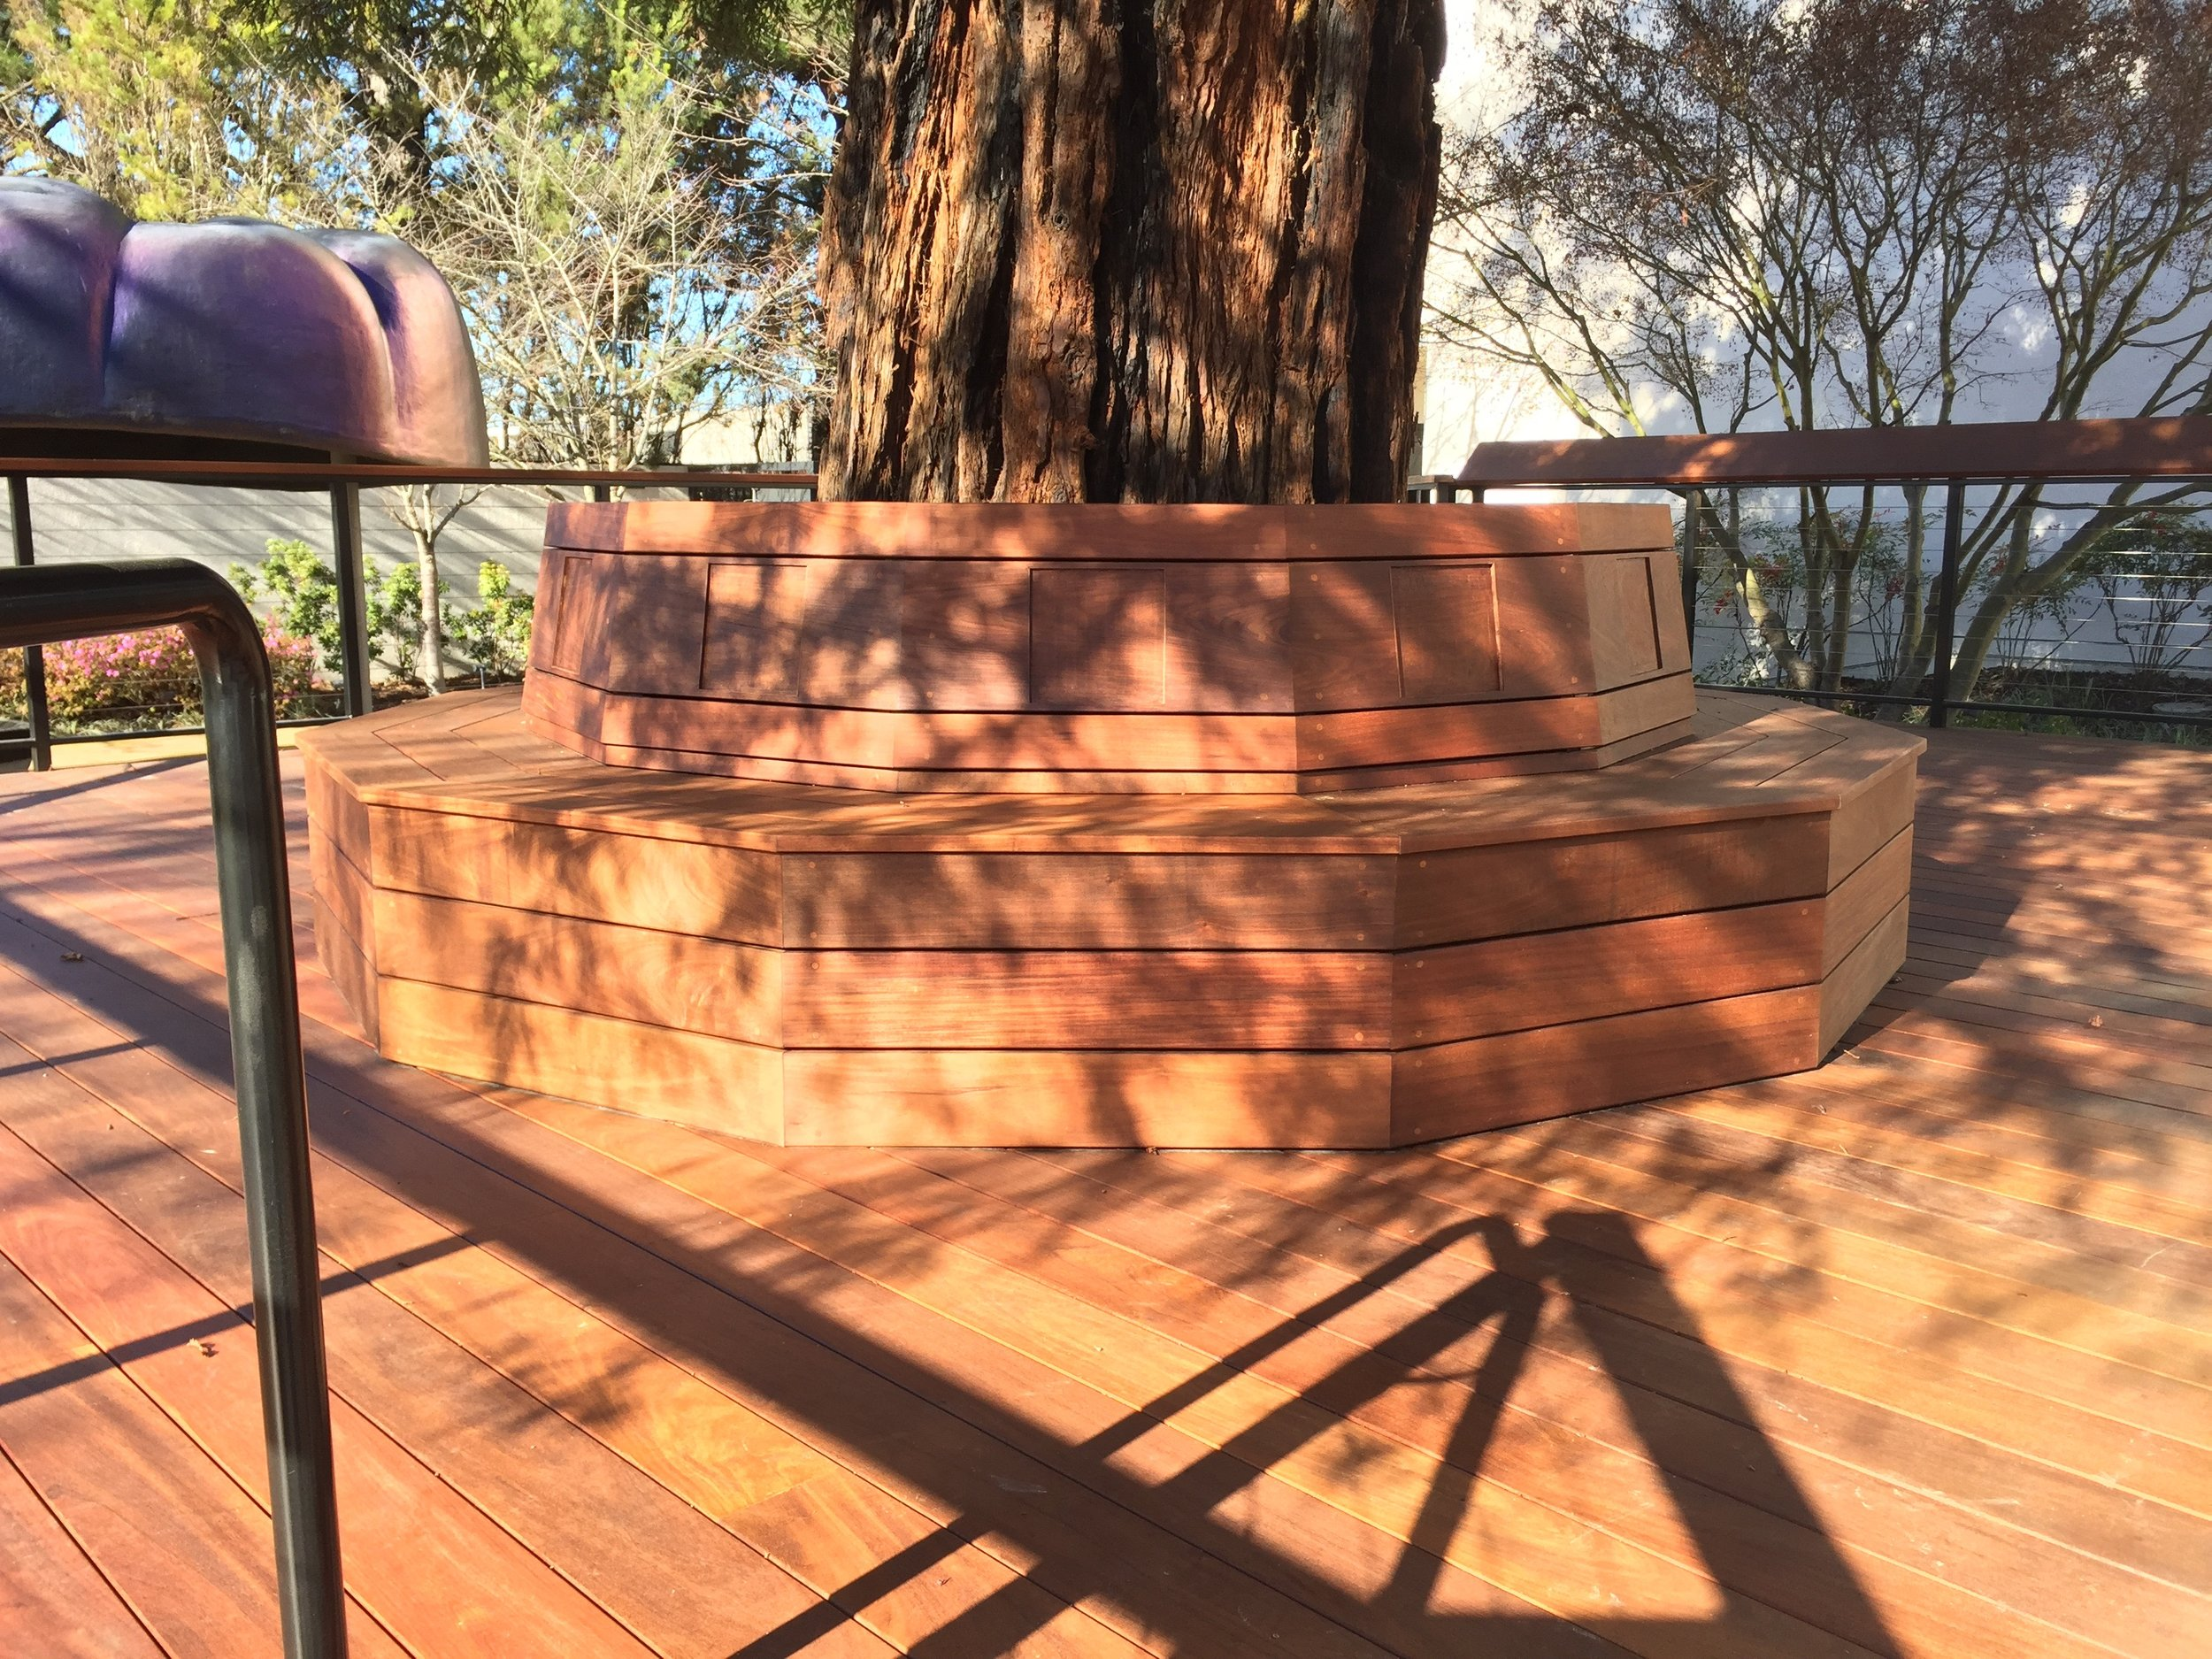 MUSEUM BENCH AND DECK